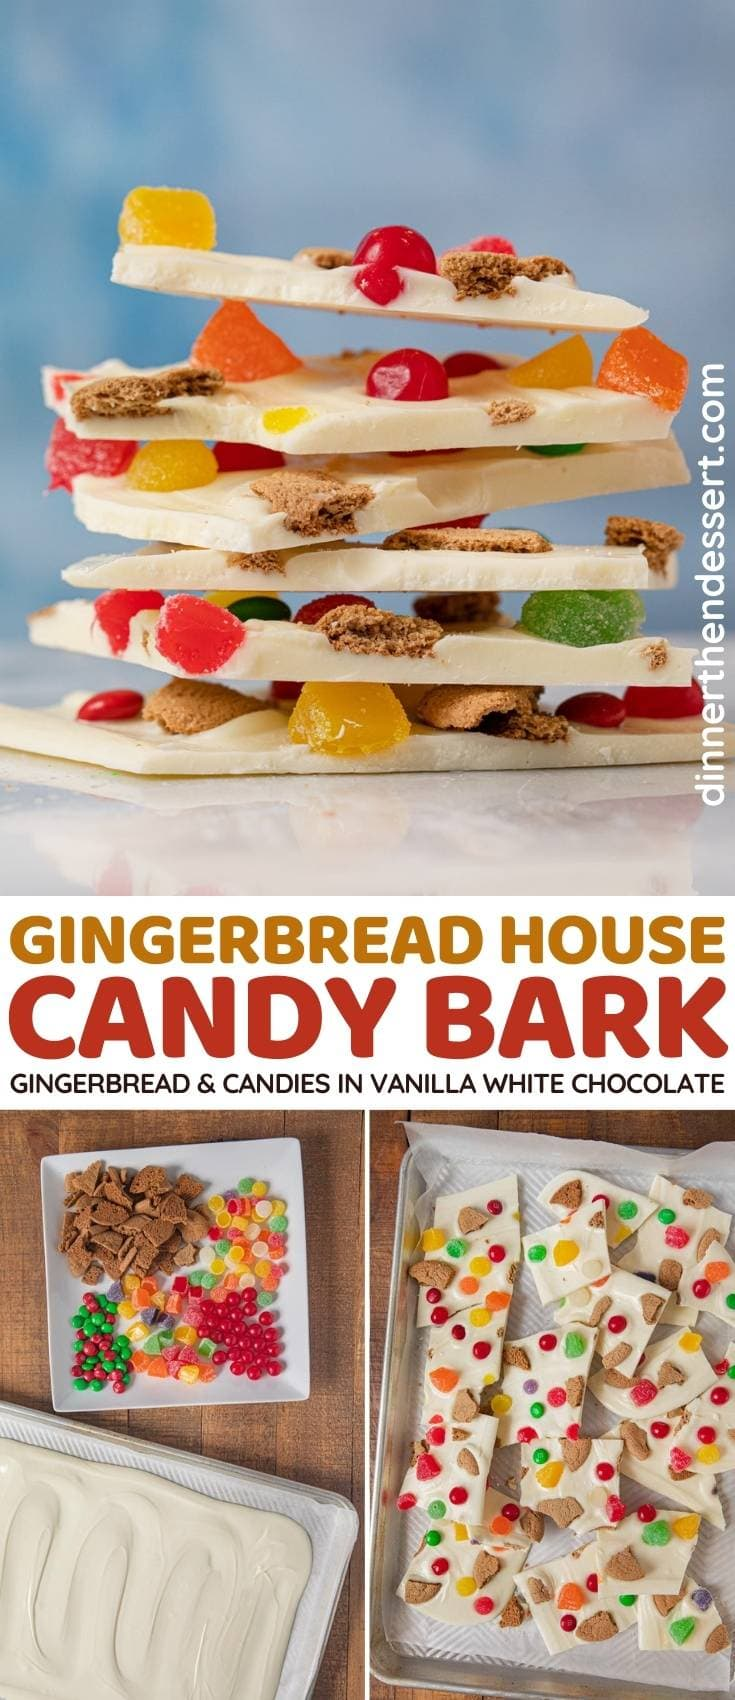 Gingerbread House Candy Bark collage